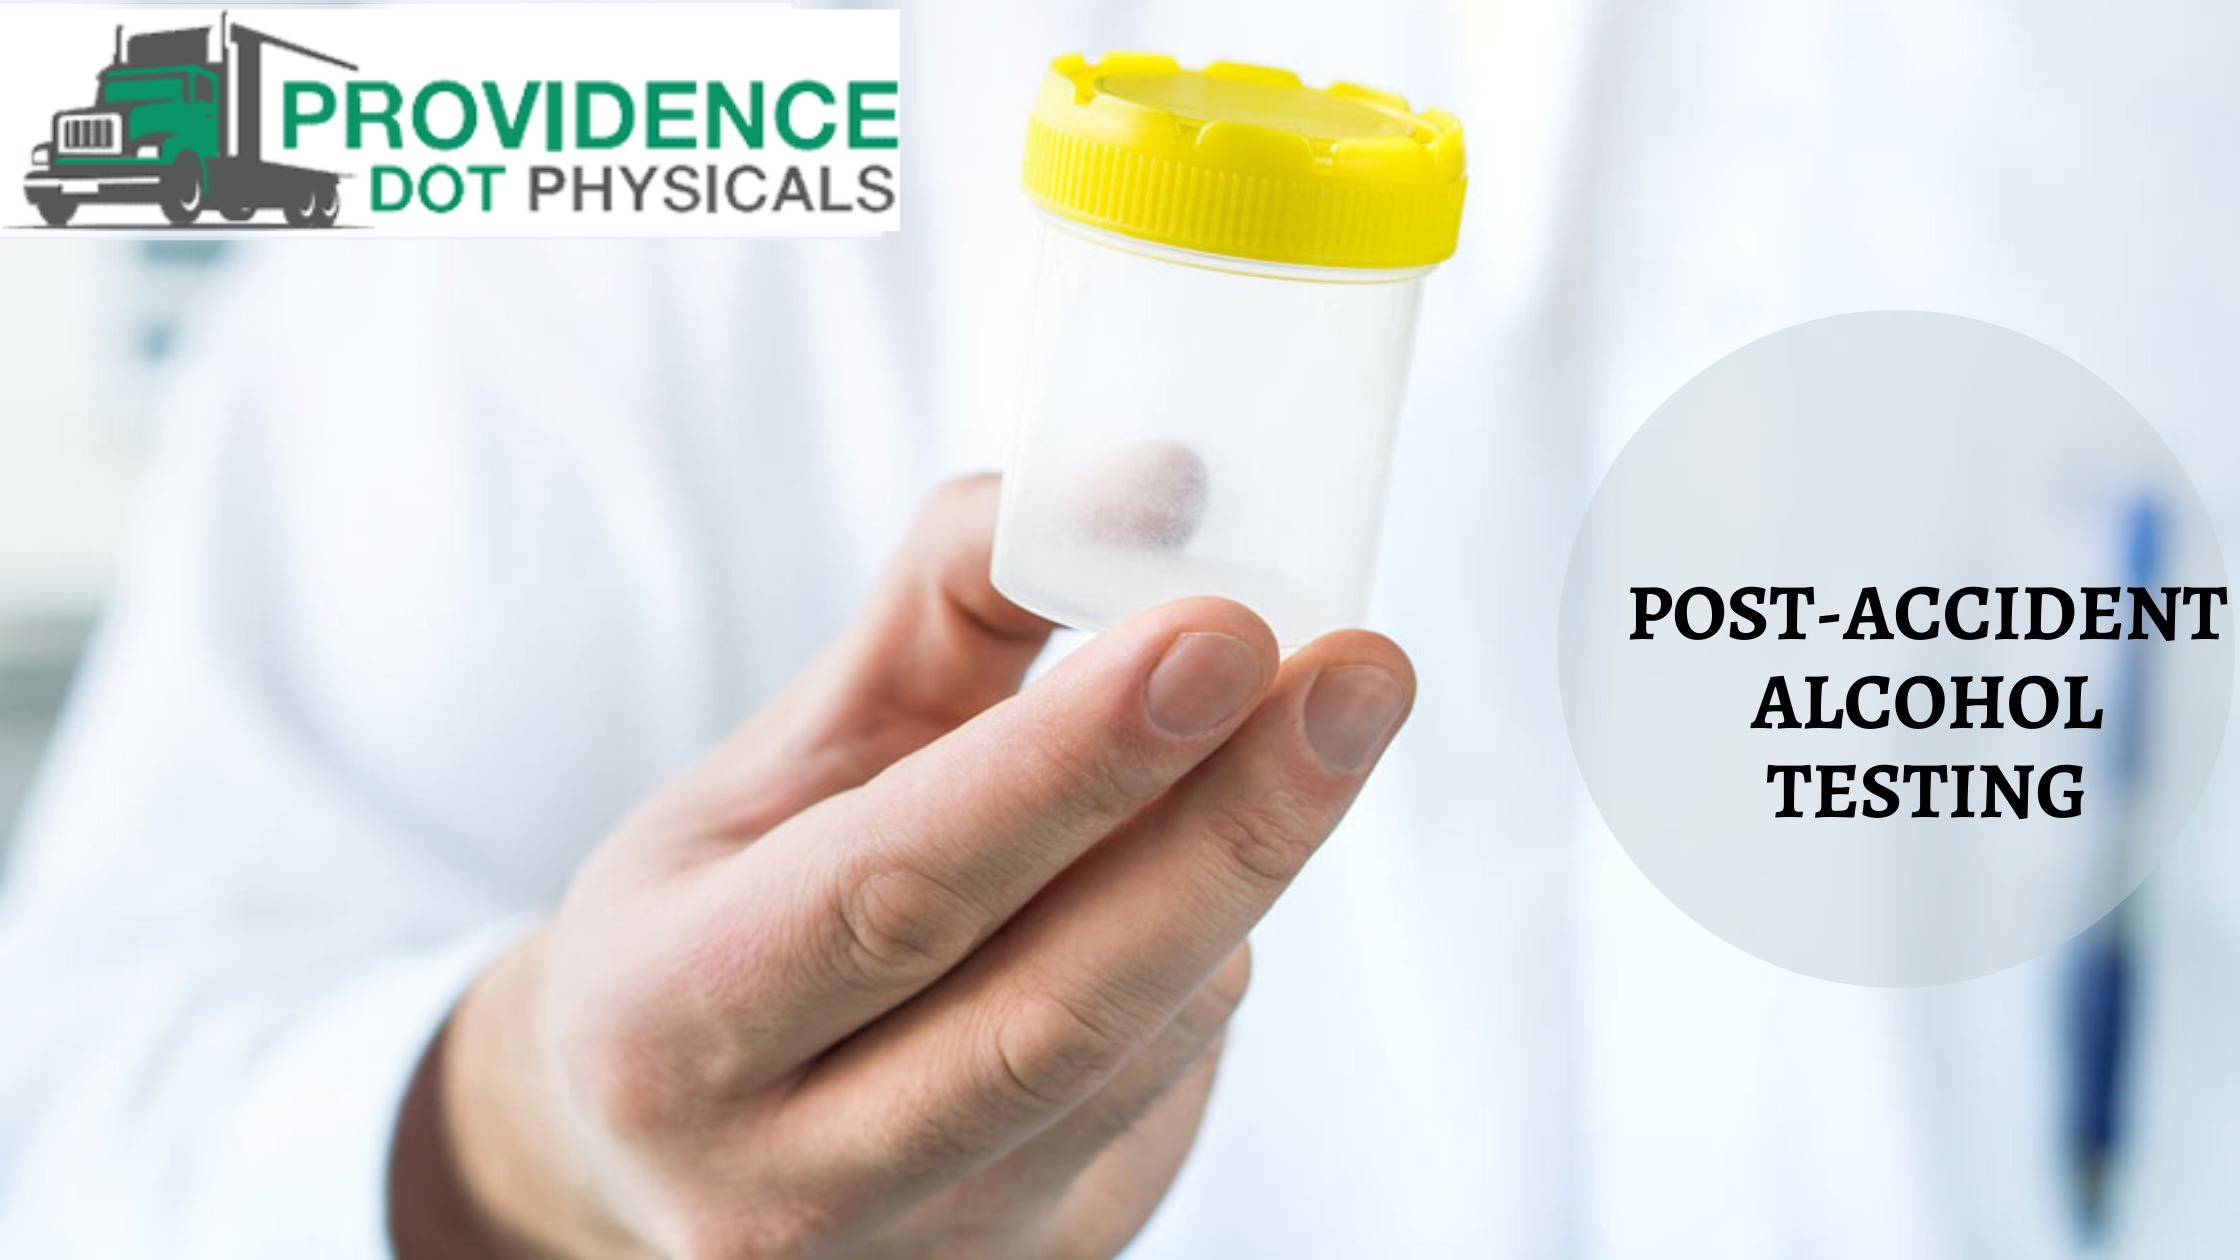 Providence DOT Physicals (@providencedotphysicals) Cover Image